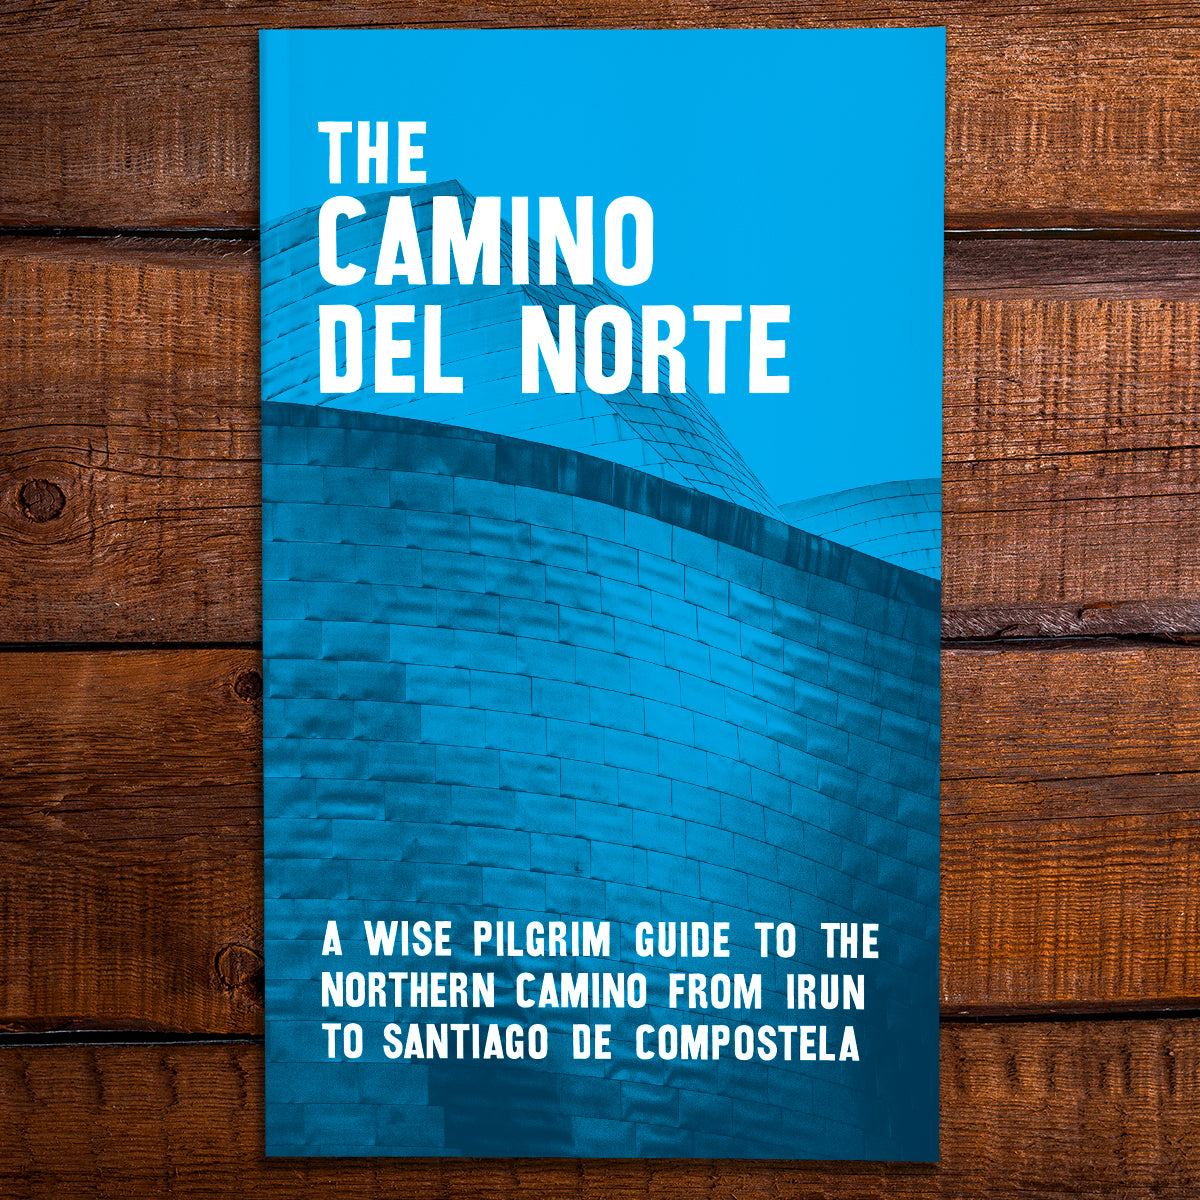 The Camino del Norte - A Wise Pilgrim guide to the Northern Camino from Irun to Santiago [2020 Edition] + Pilgrim Credential